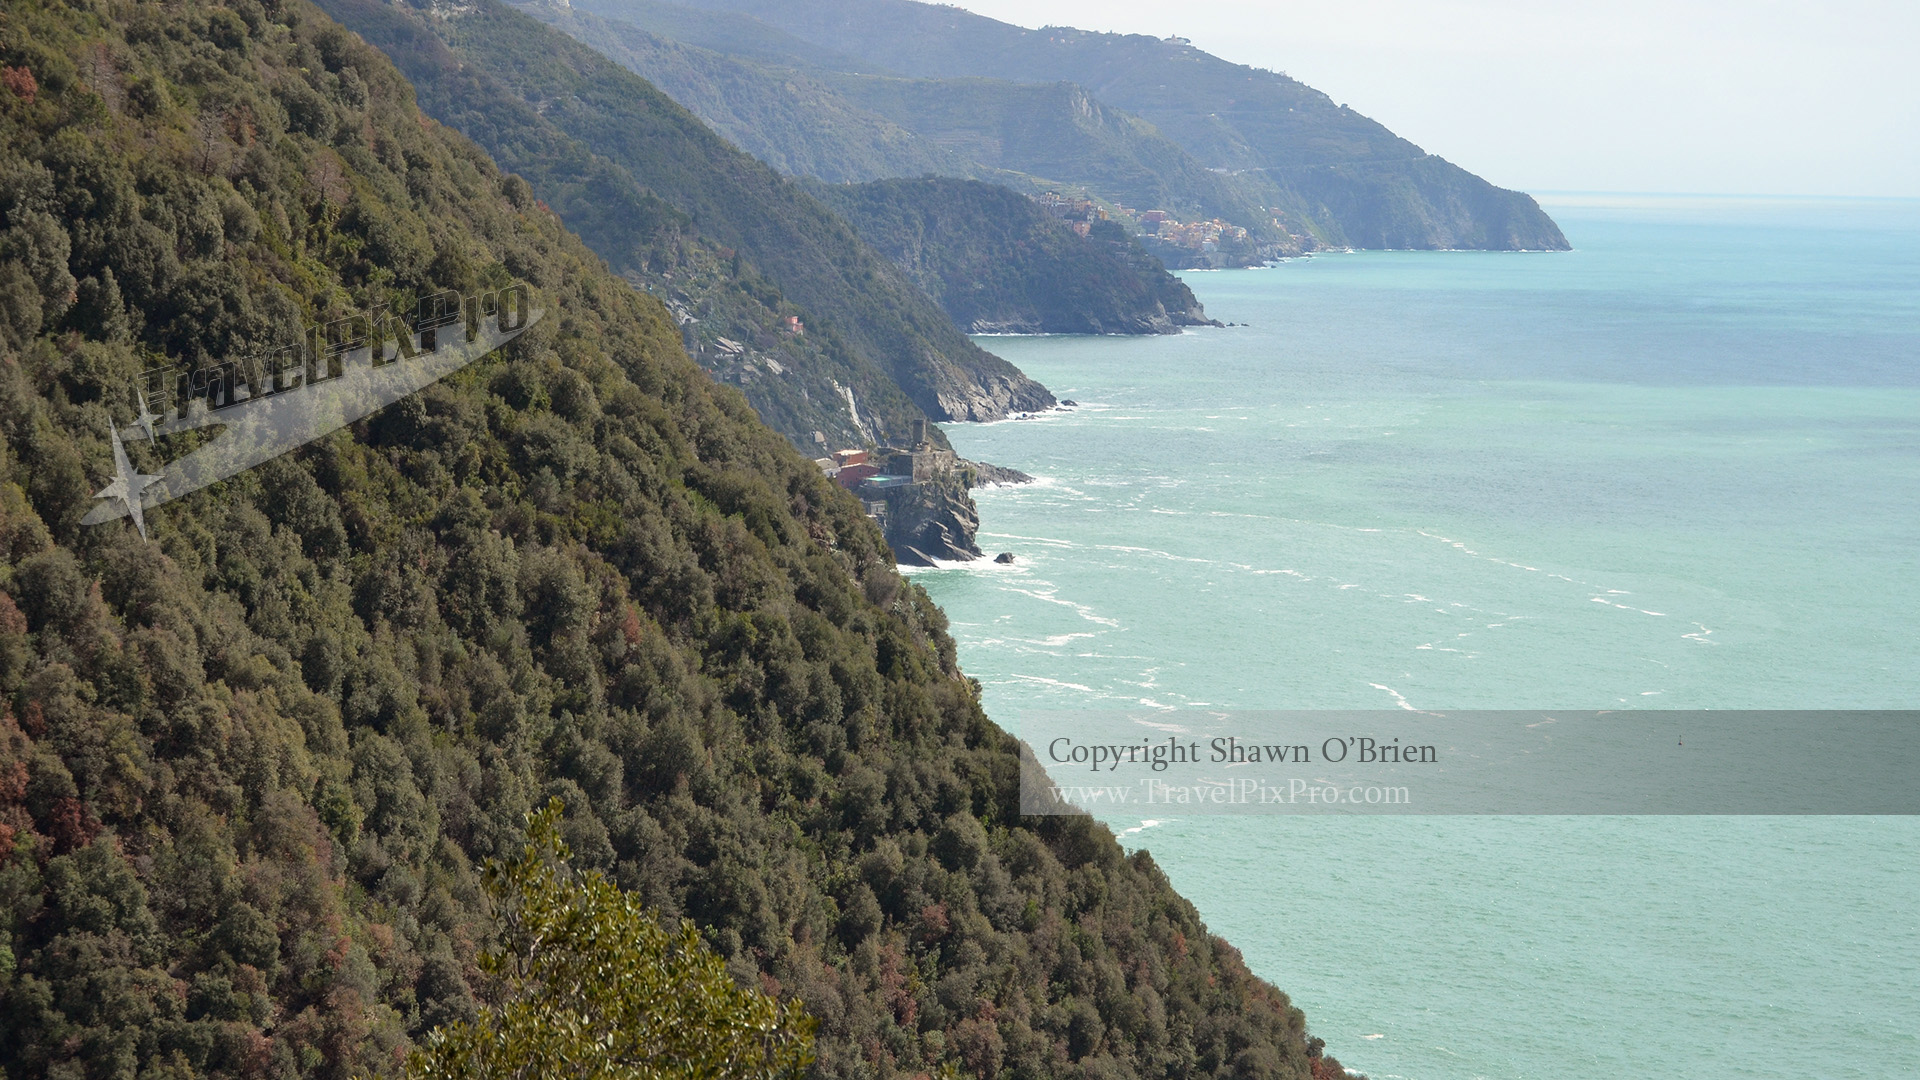 Monterosso to Vernazza Footpath View